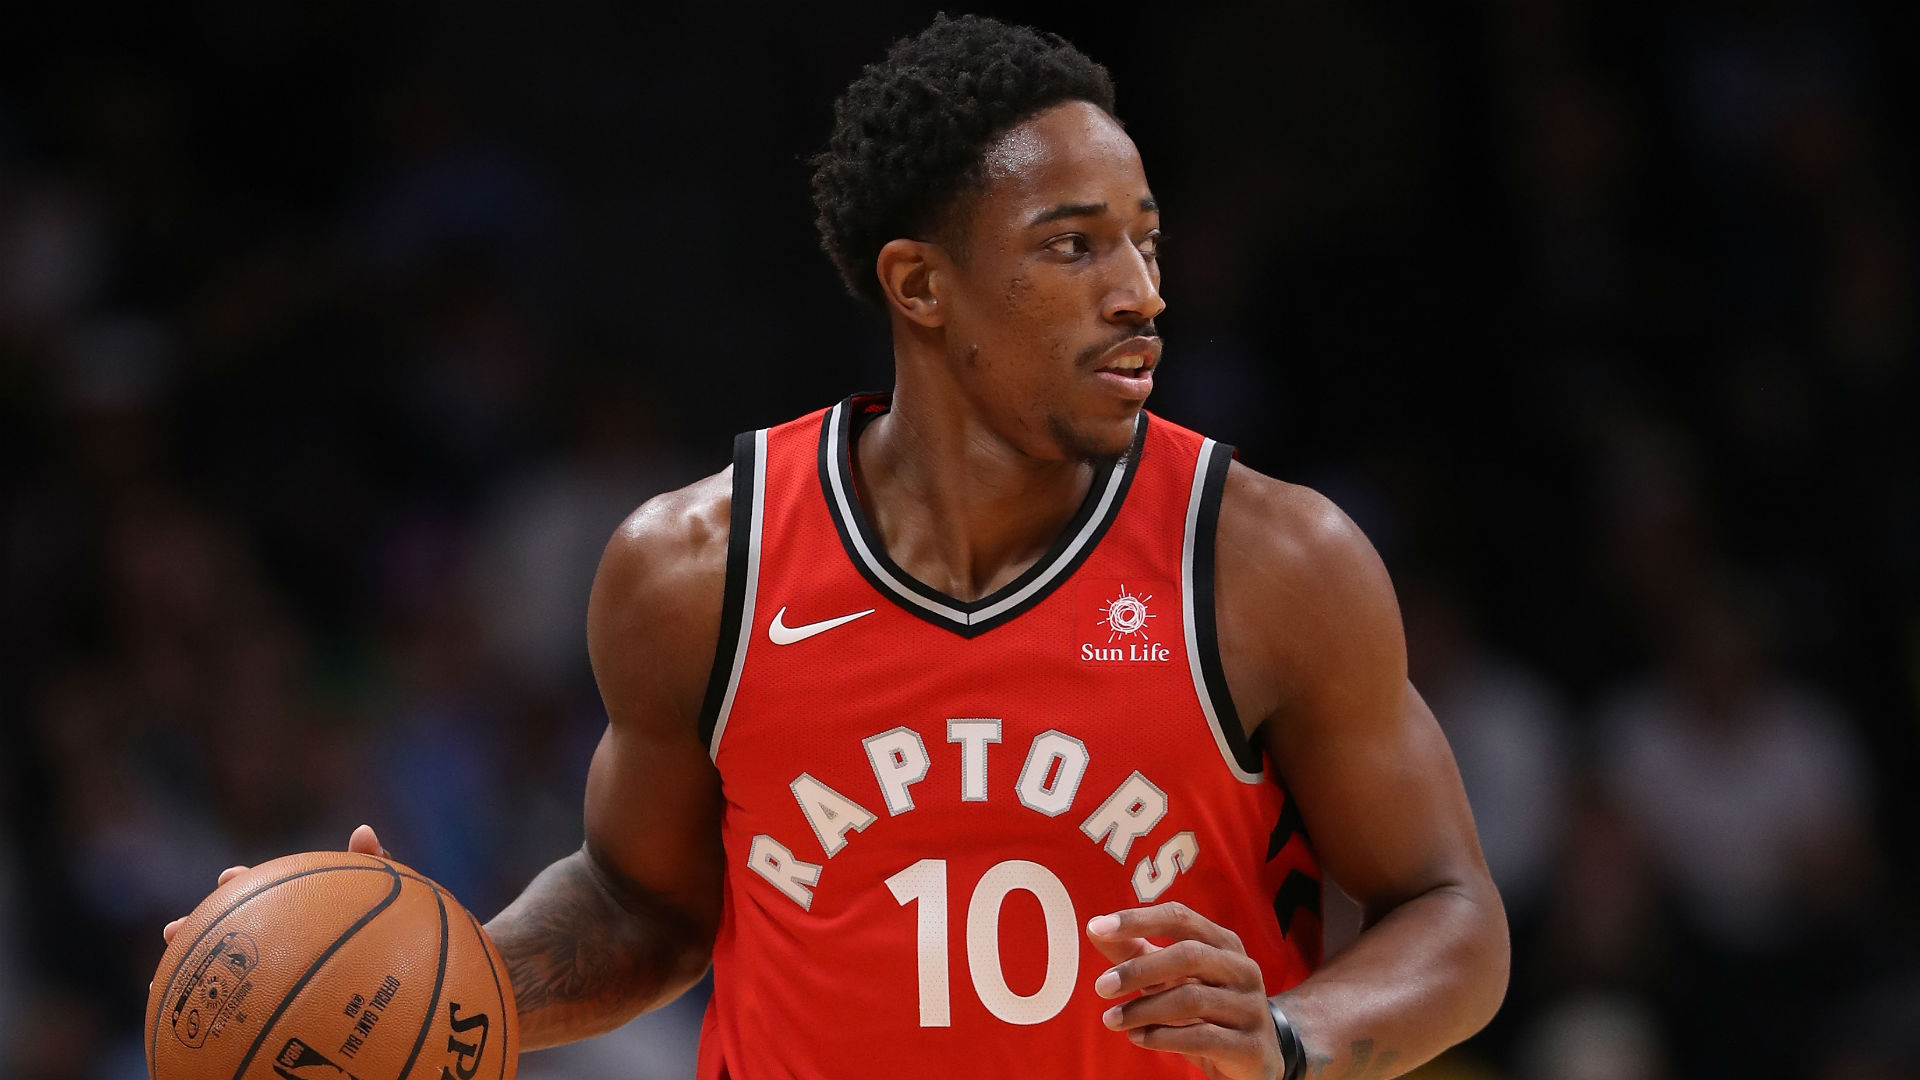 NBA Playoffs: Breaking down the Raptors-Wizards series